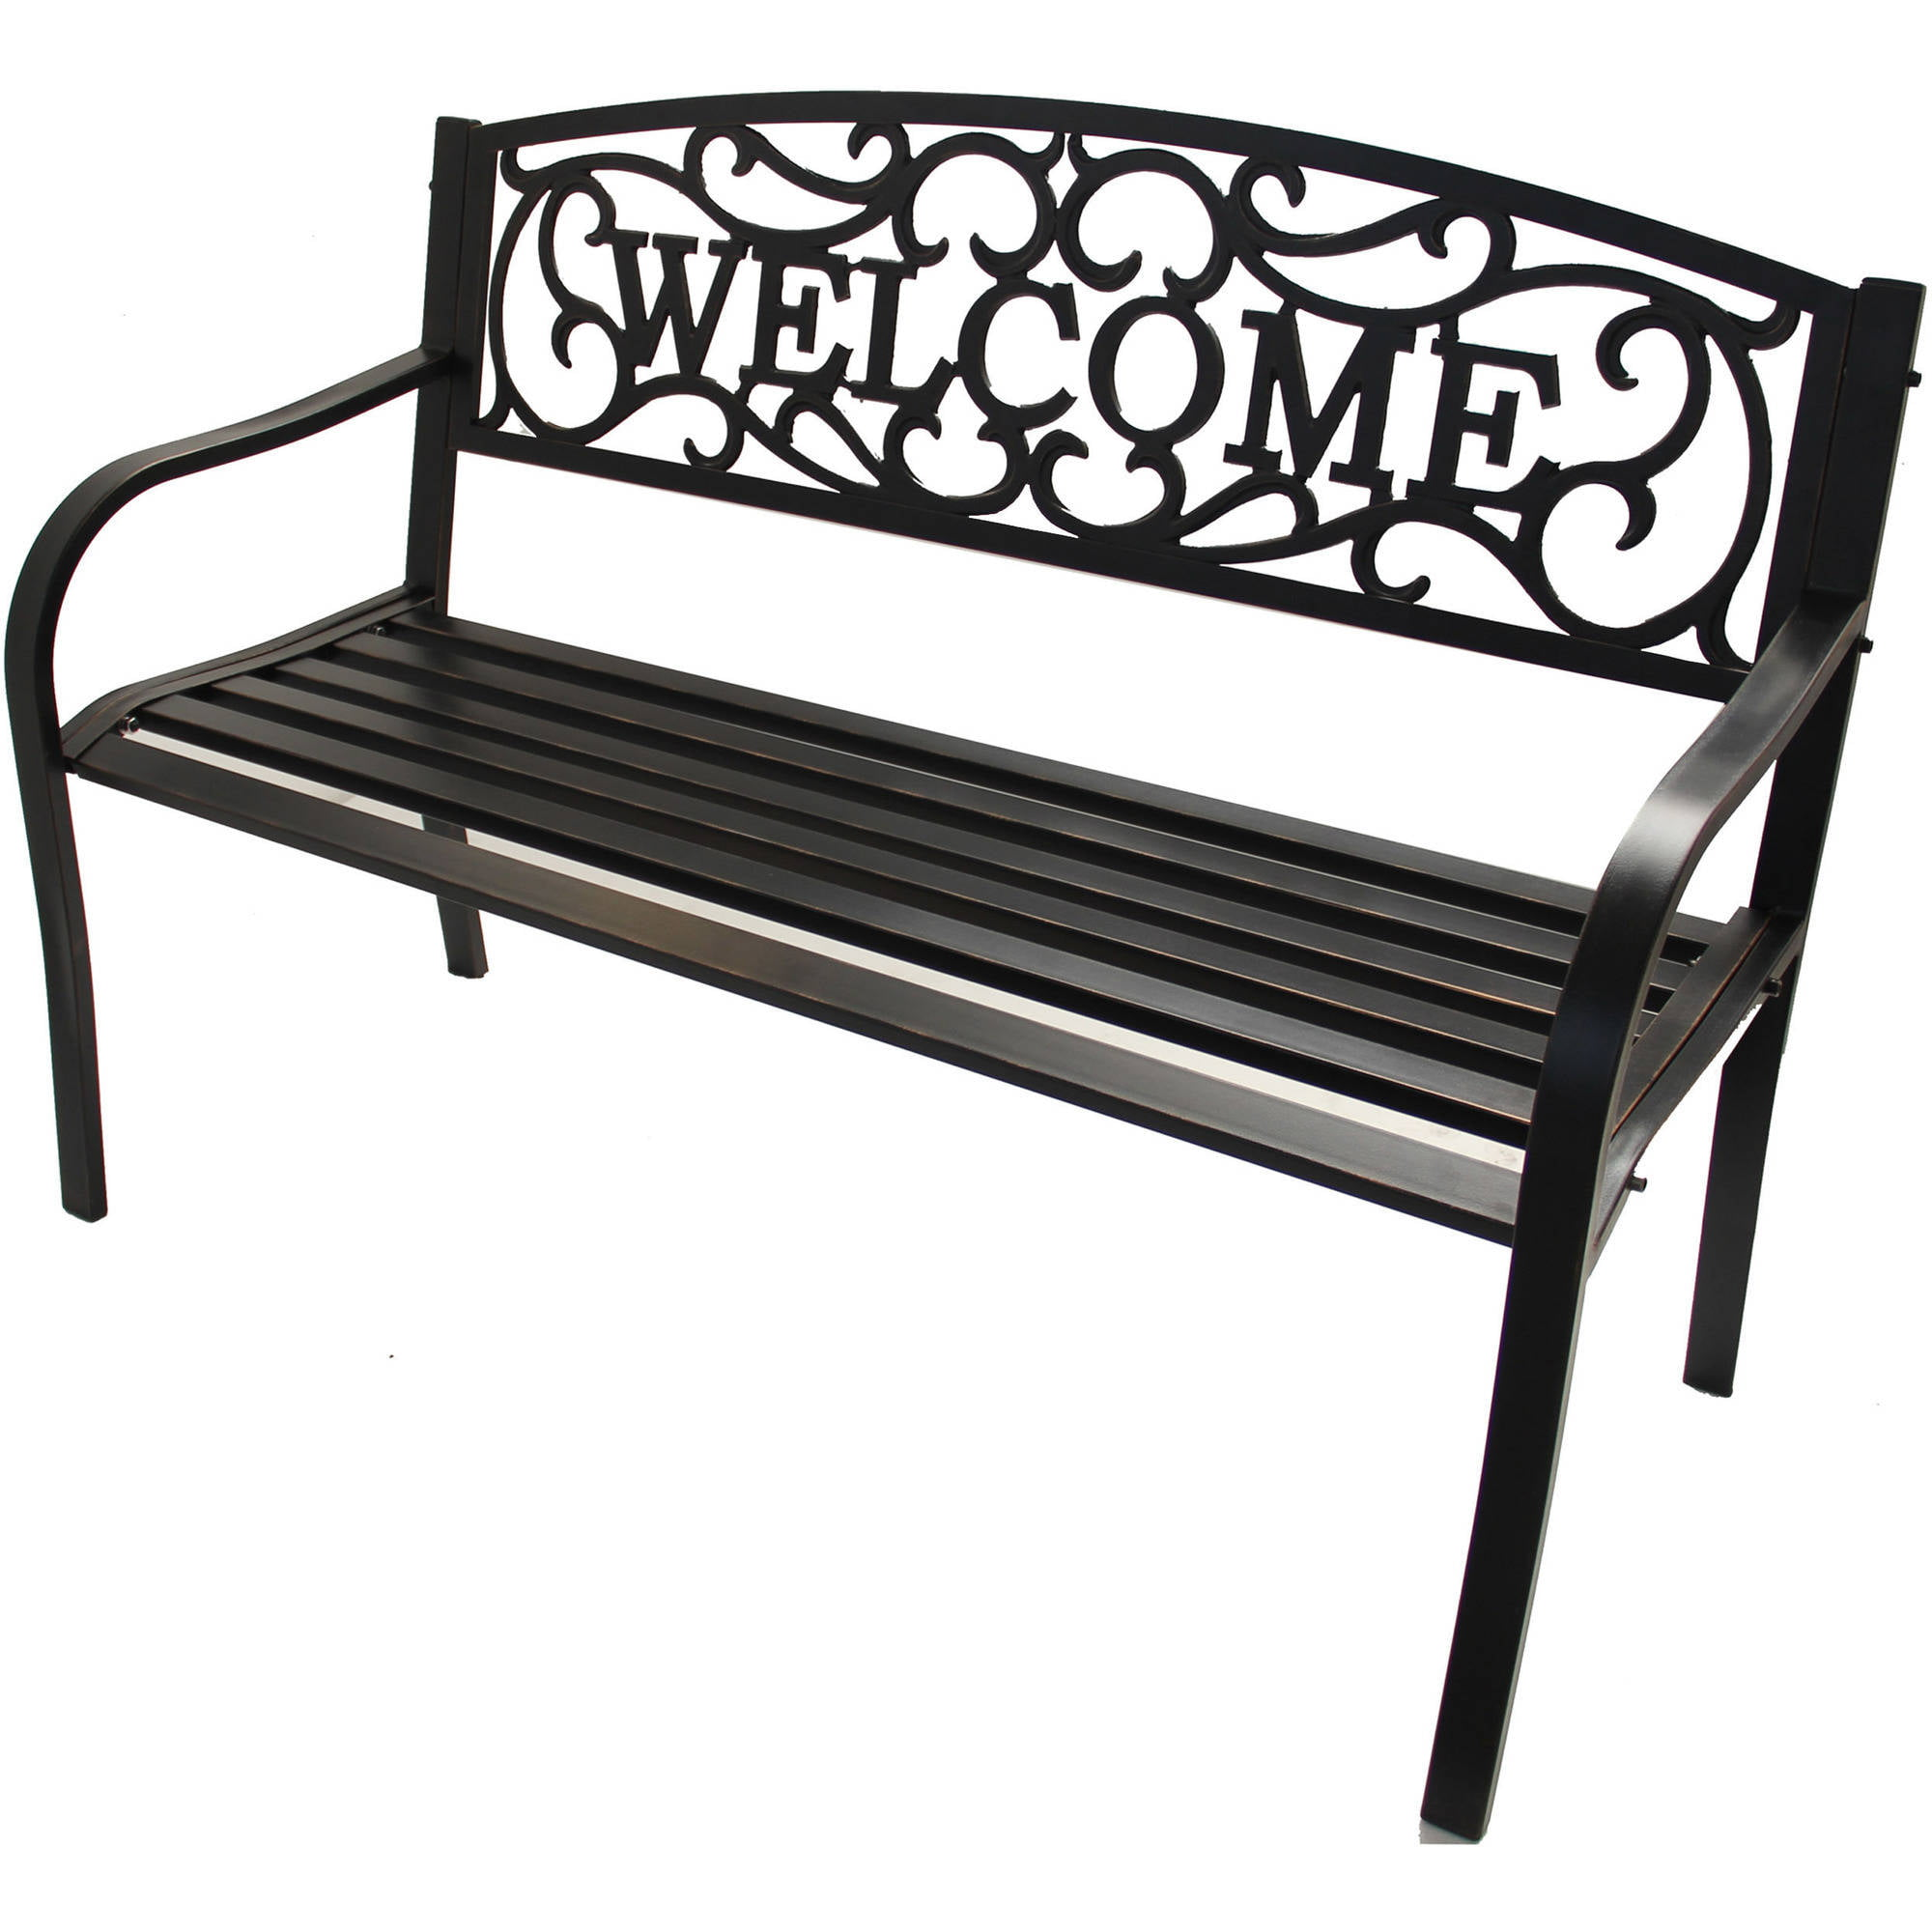 Better Homes Gardens Welcome Outdoor Bench Walmart Com